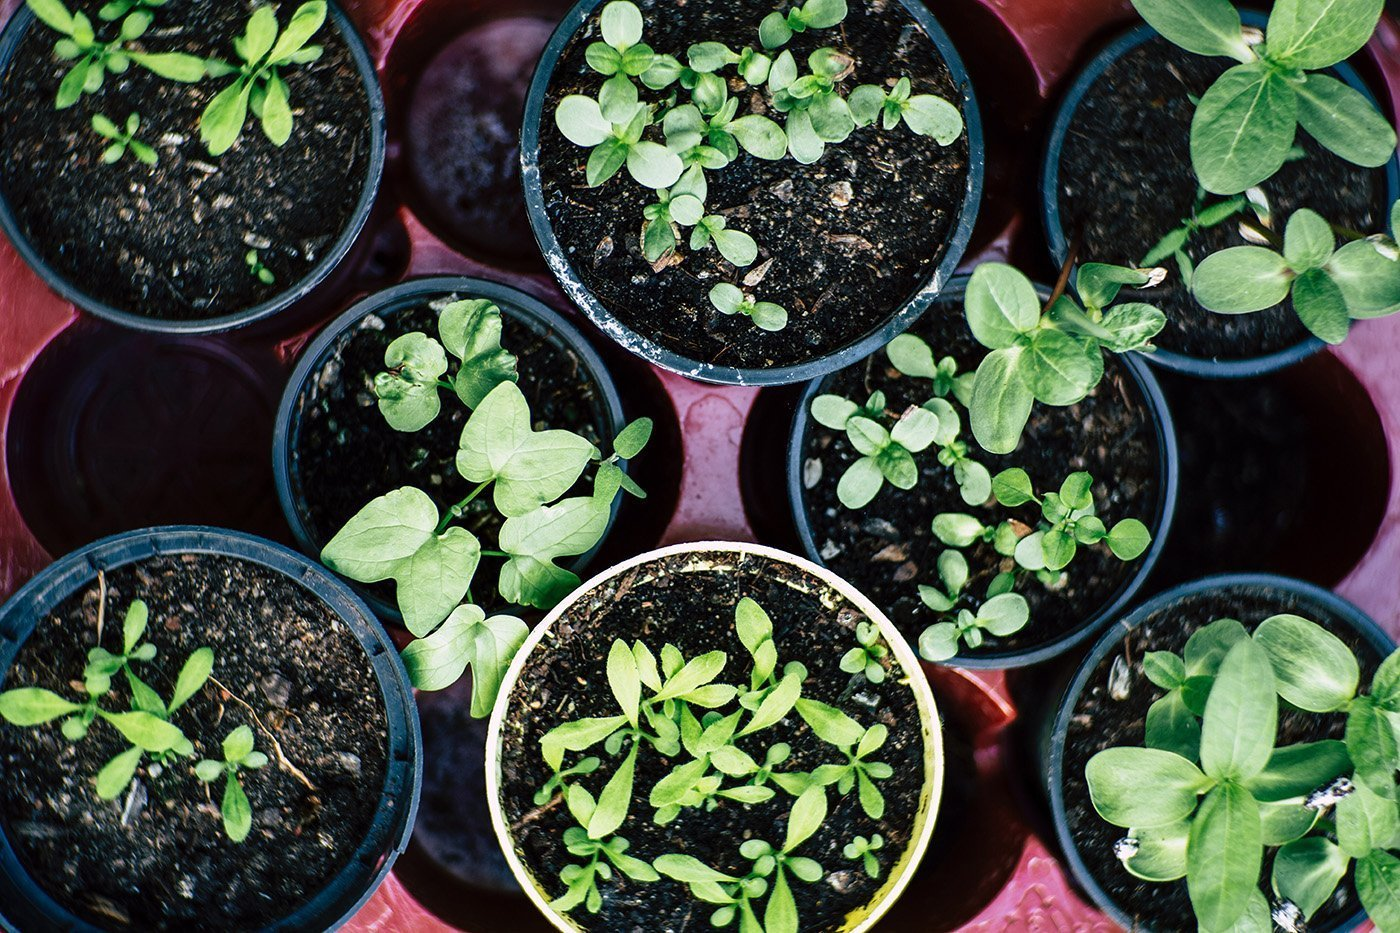 How to Start Growing Vegetables and Herbs Indoors